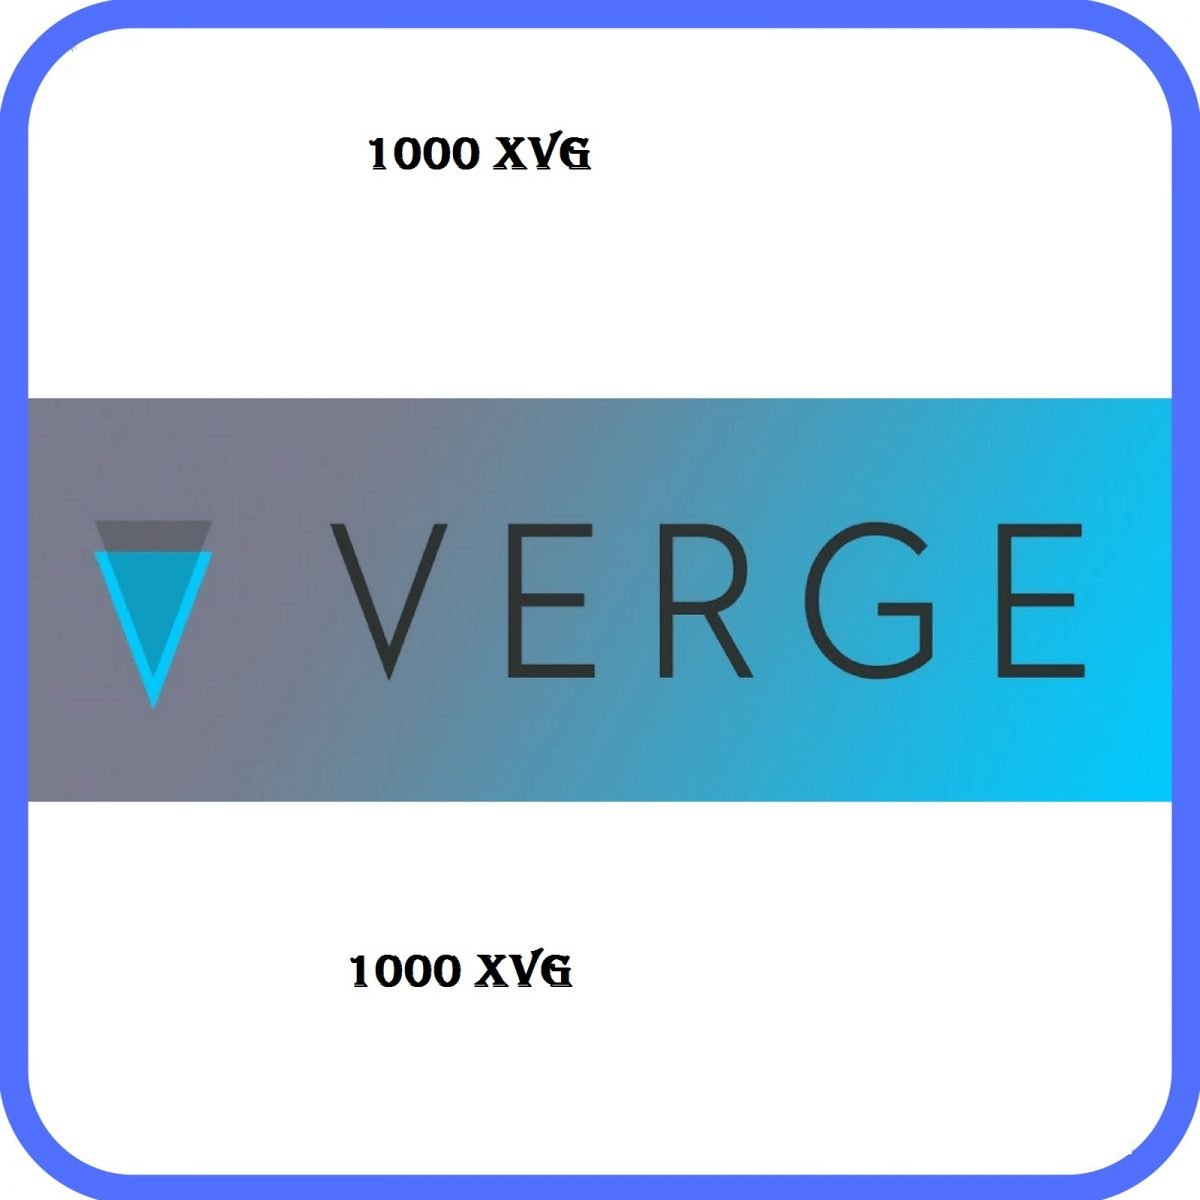 Verge open software source